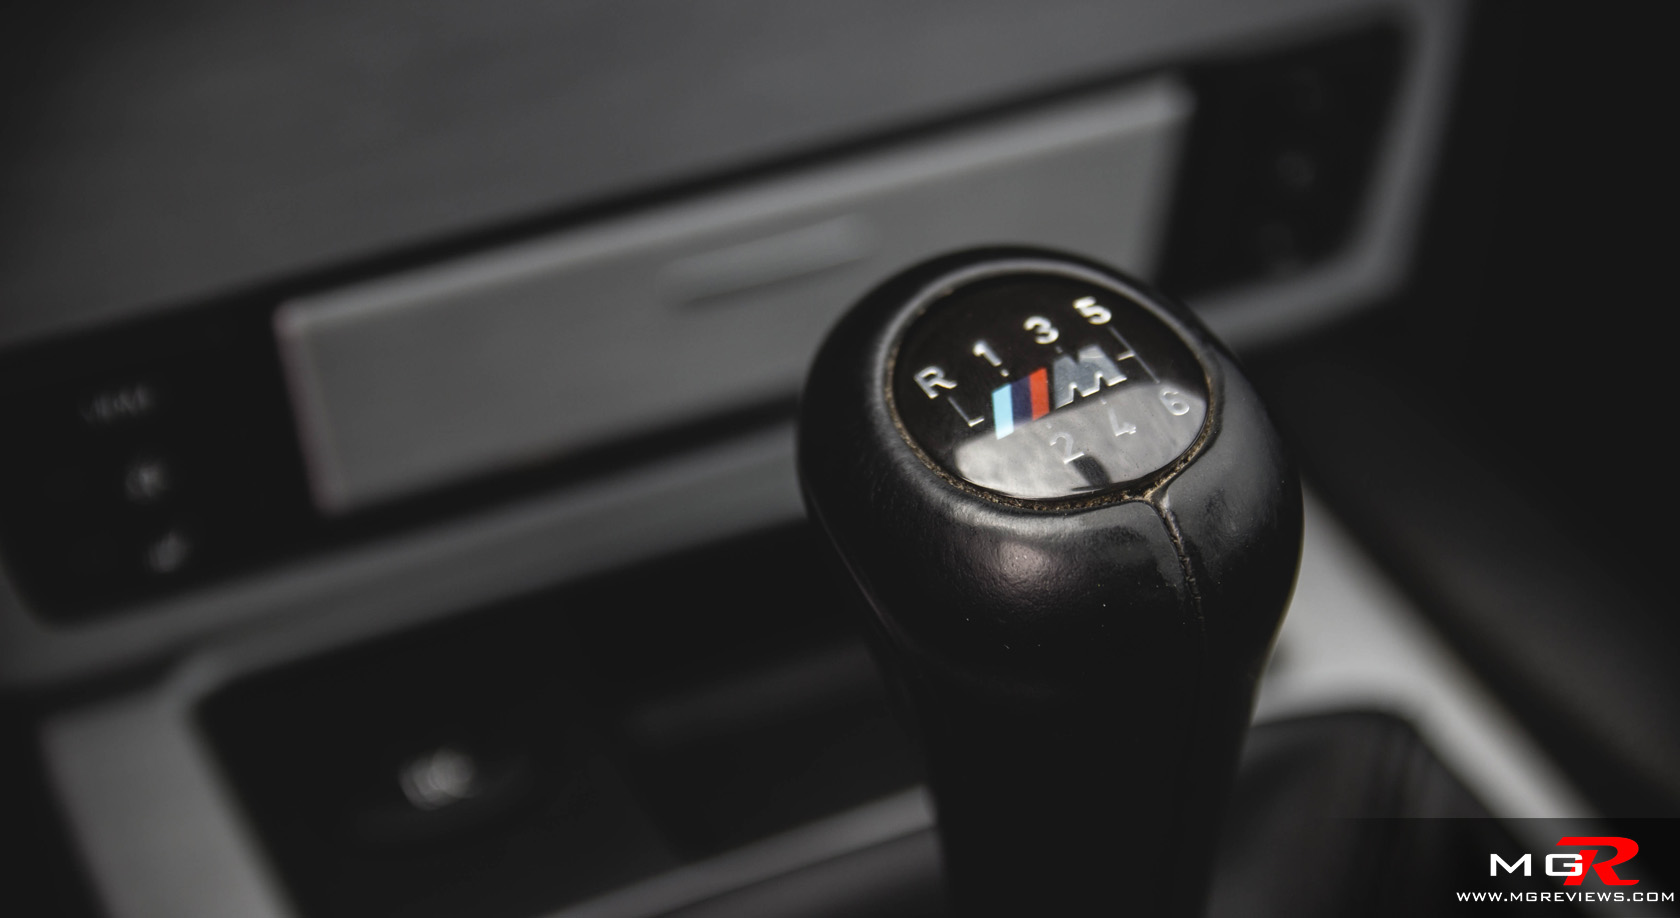 review: 2010 bmw m5 – m.g.reviews